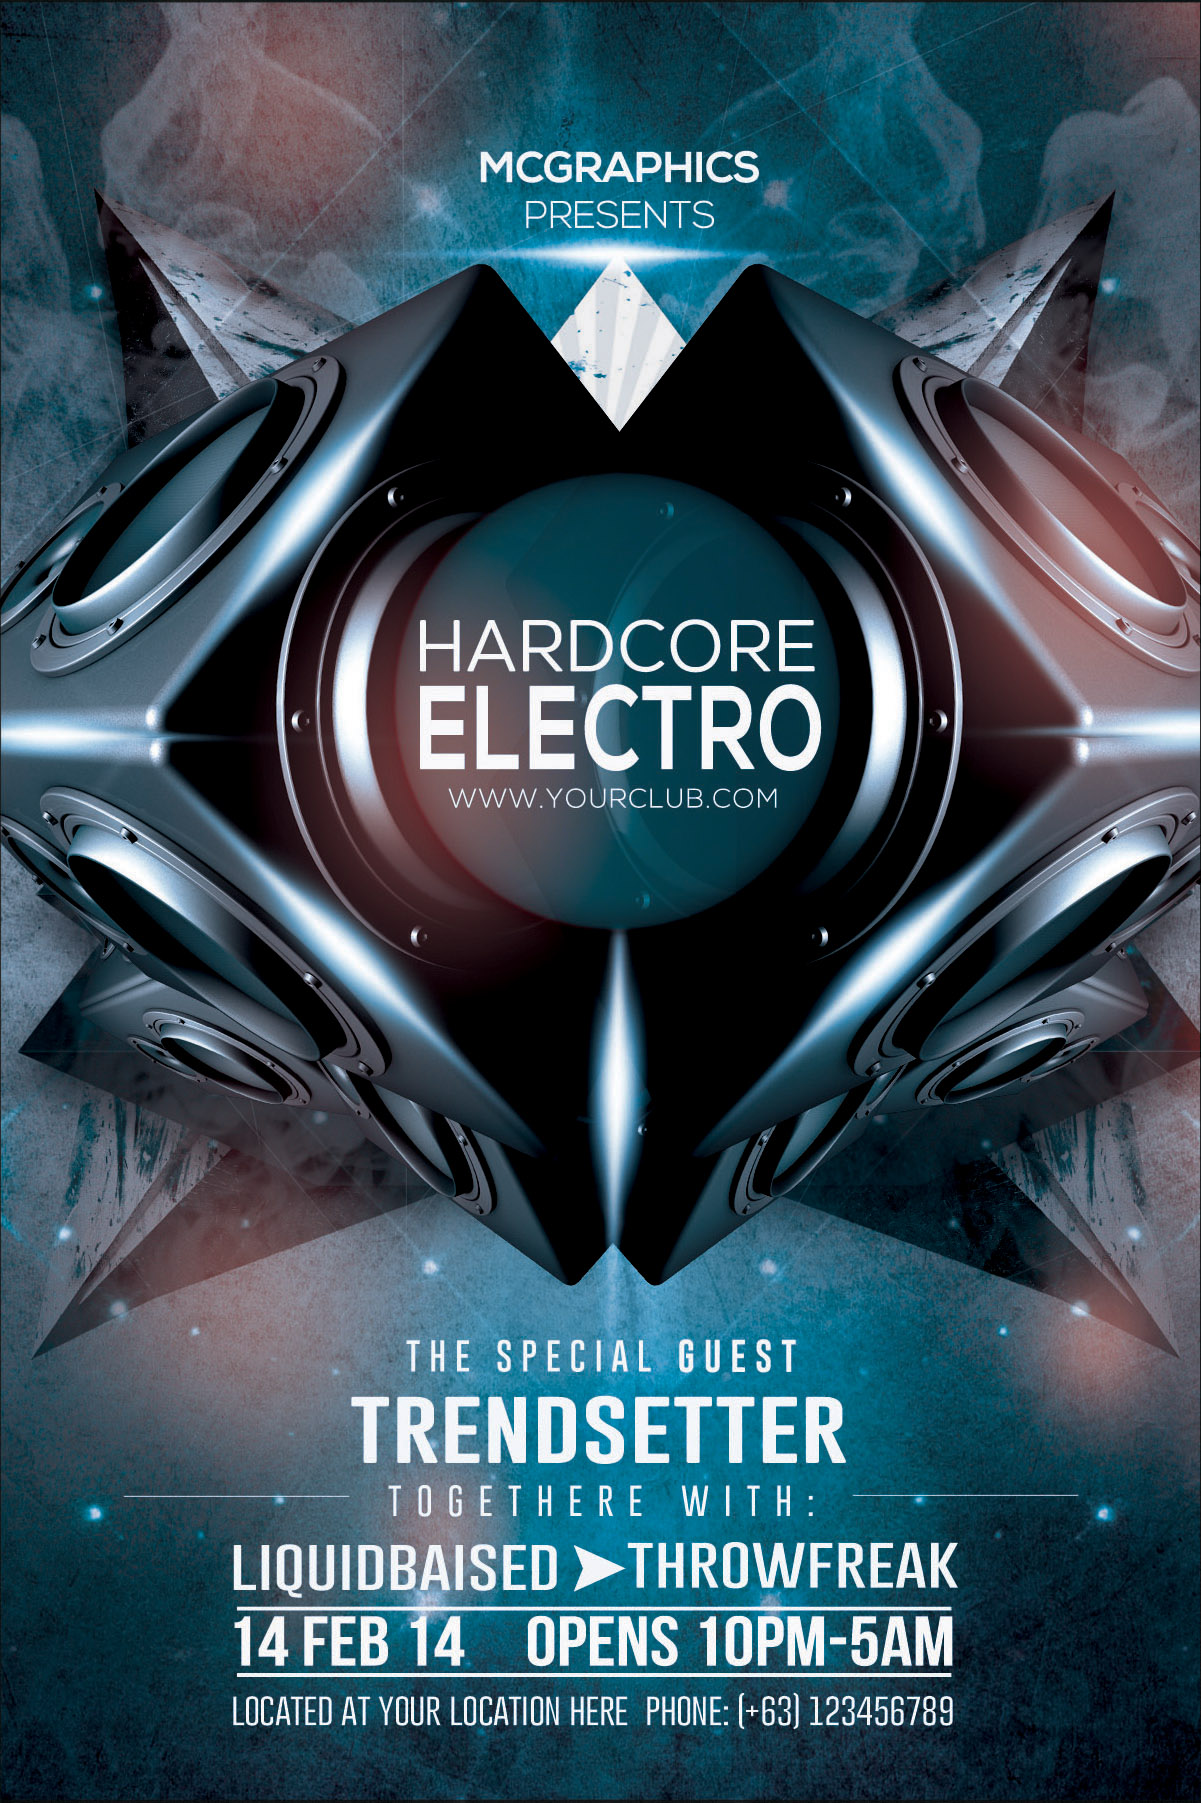 HARDCORE ELECTRO PSD FLYER TEMPLATE by MCGRAPHICS GFX at Coroflot – Electro Flyer